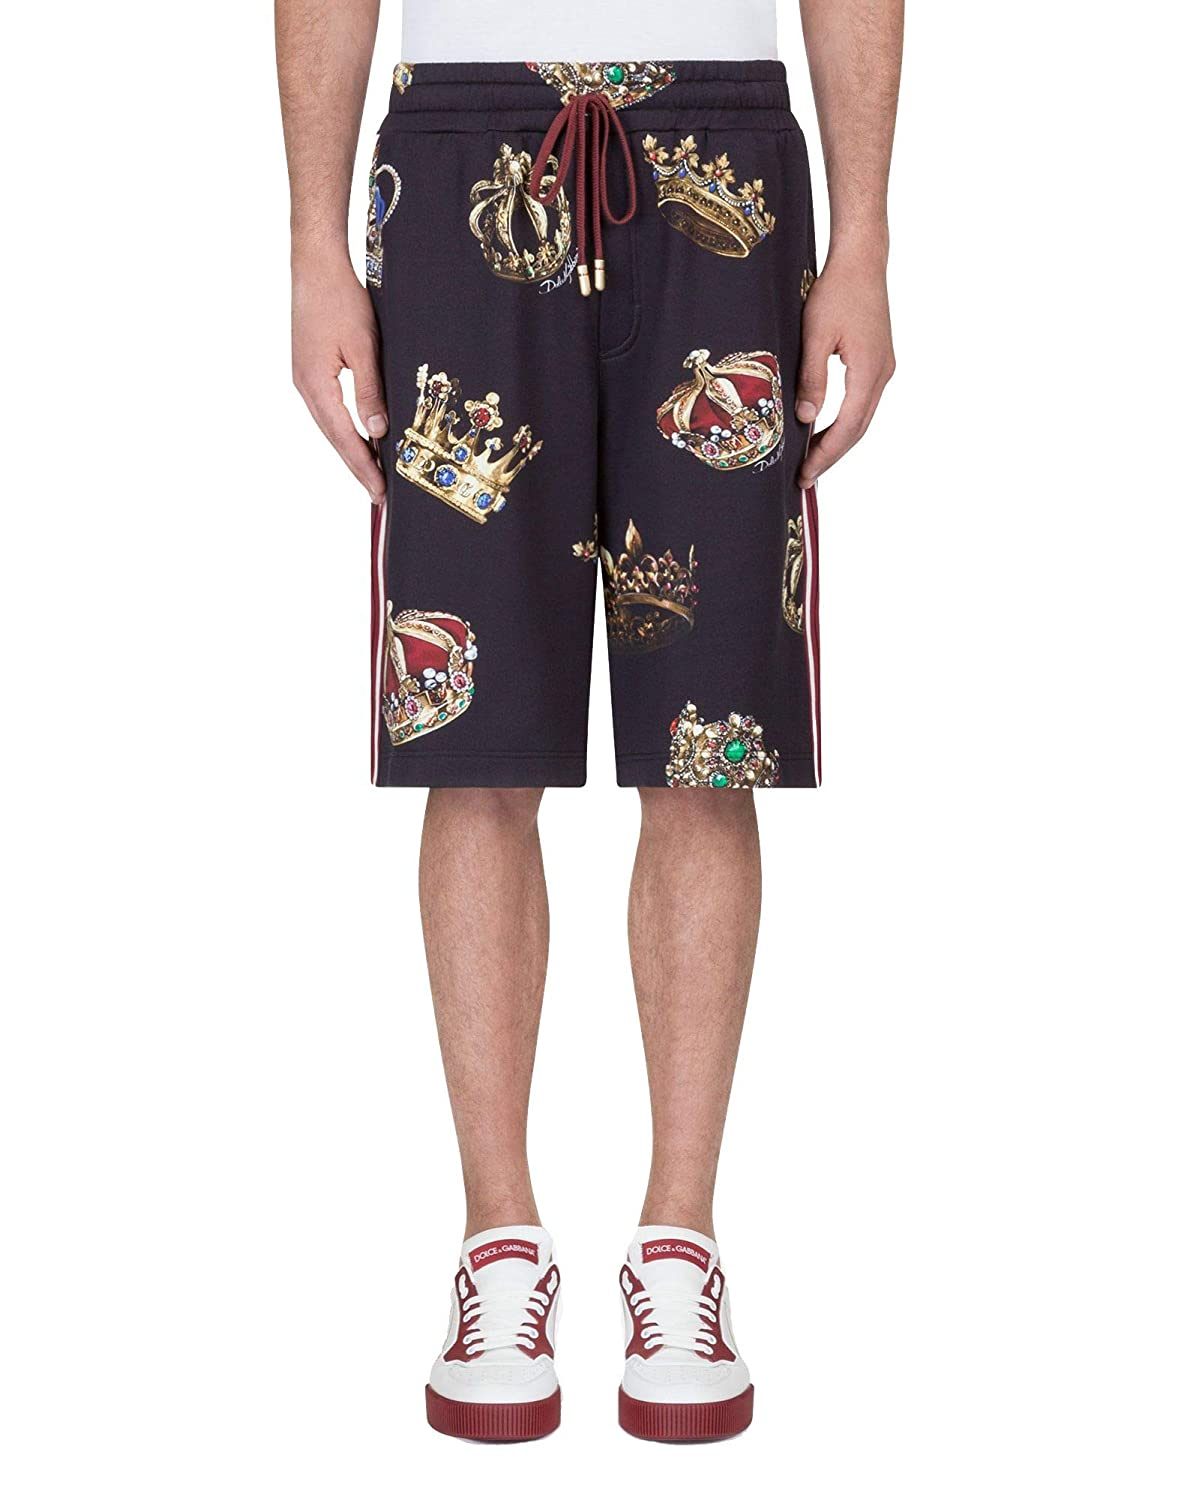 half off 7d5bc 7137e Dolce e Gabbana Men's Gy2jatfs74dhnv93 Black Cotton Shorts ...